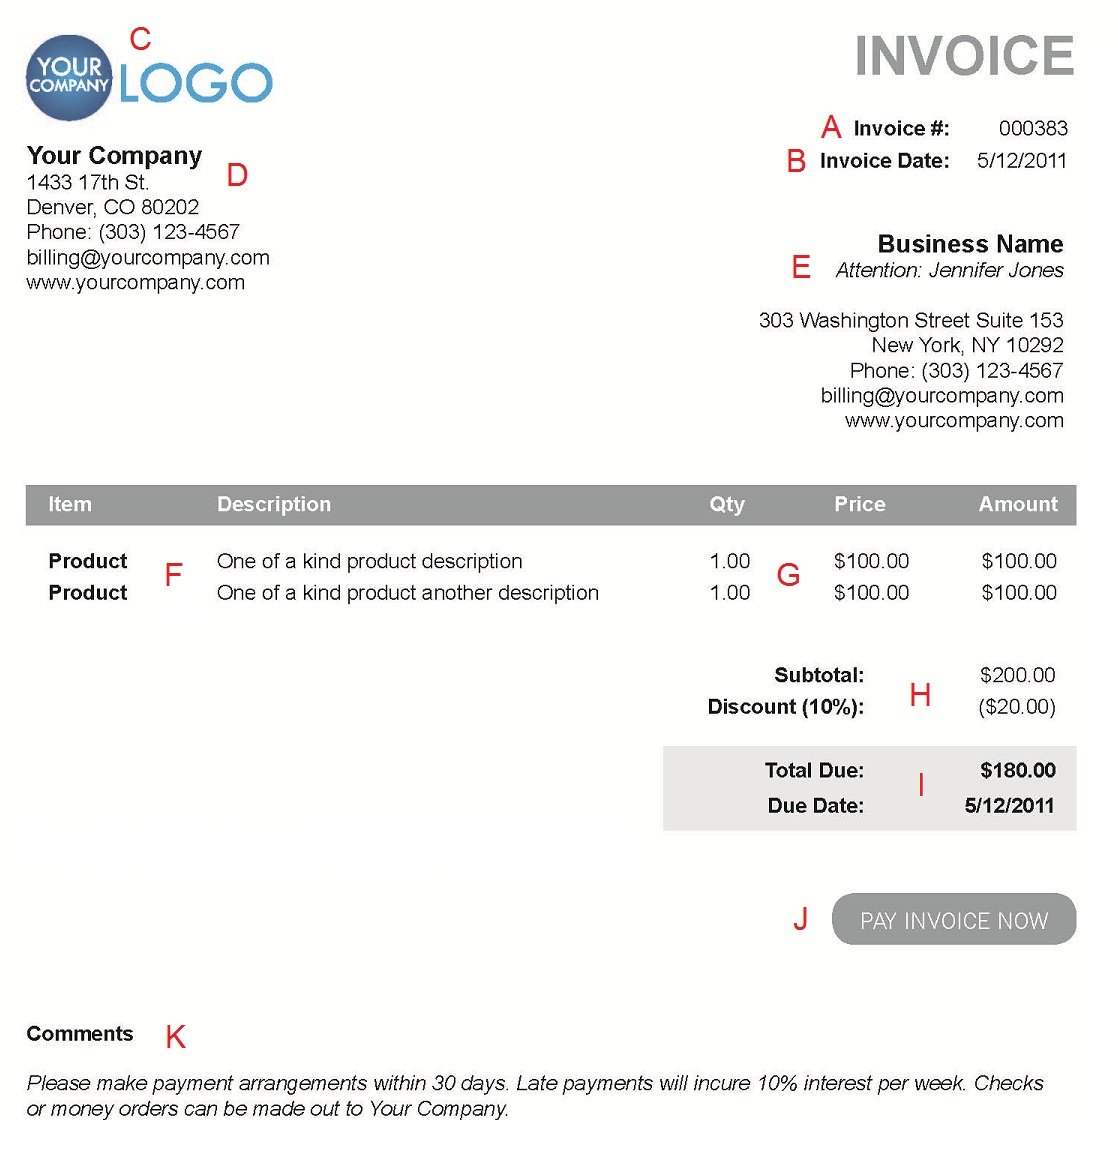 Carsforlessus  Remarkable The  Different Sections Of An Electronic Payment Invoice With Fetching A  With Divine Meaning Of Sales Invoice Also Invoice Templates Uk In Addition Invoice Price Of New Car And Blank Invoice Excel As Well As Customs Invoices Additionally Free Invoicing Template From Paysimplecom With Carsforlessus  Fetching The  Different Sections Of An Electronic Payment Invoice With Divine A  And Remarkable Meaning Of Sales Invoice Also Invoice Templates Uk In Addition Invoice Price Of New Car From Paysimplecom